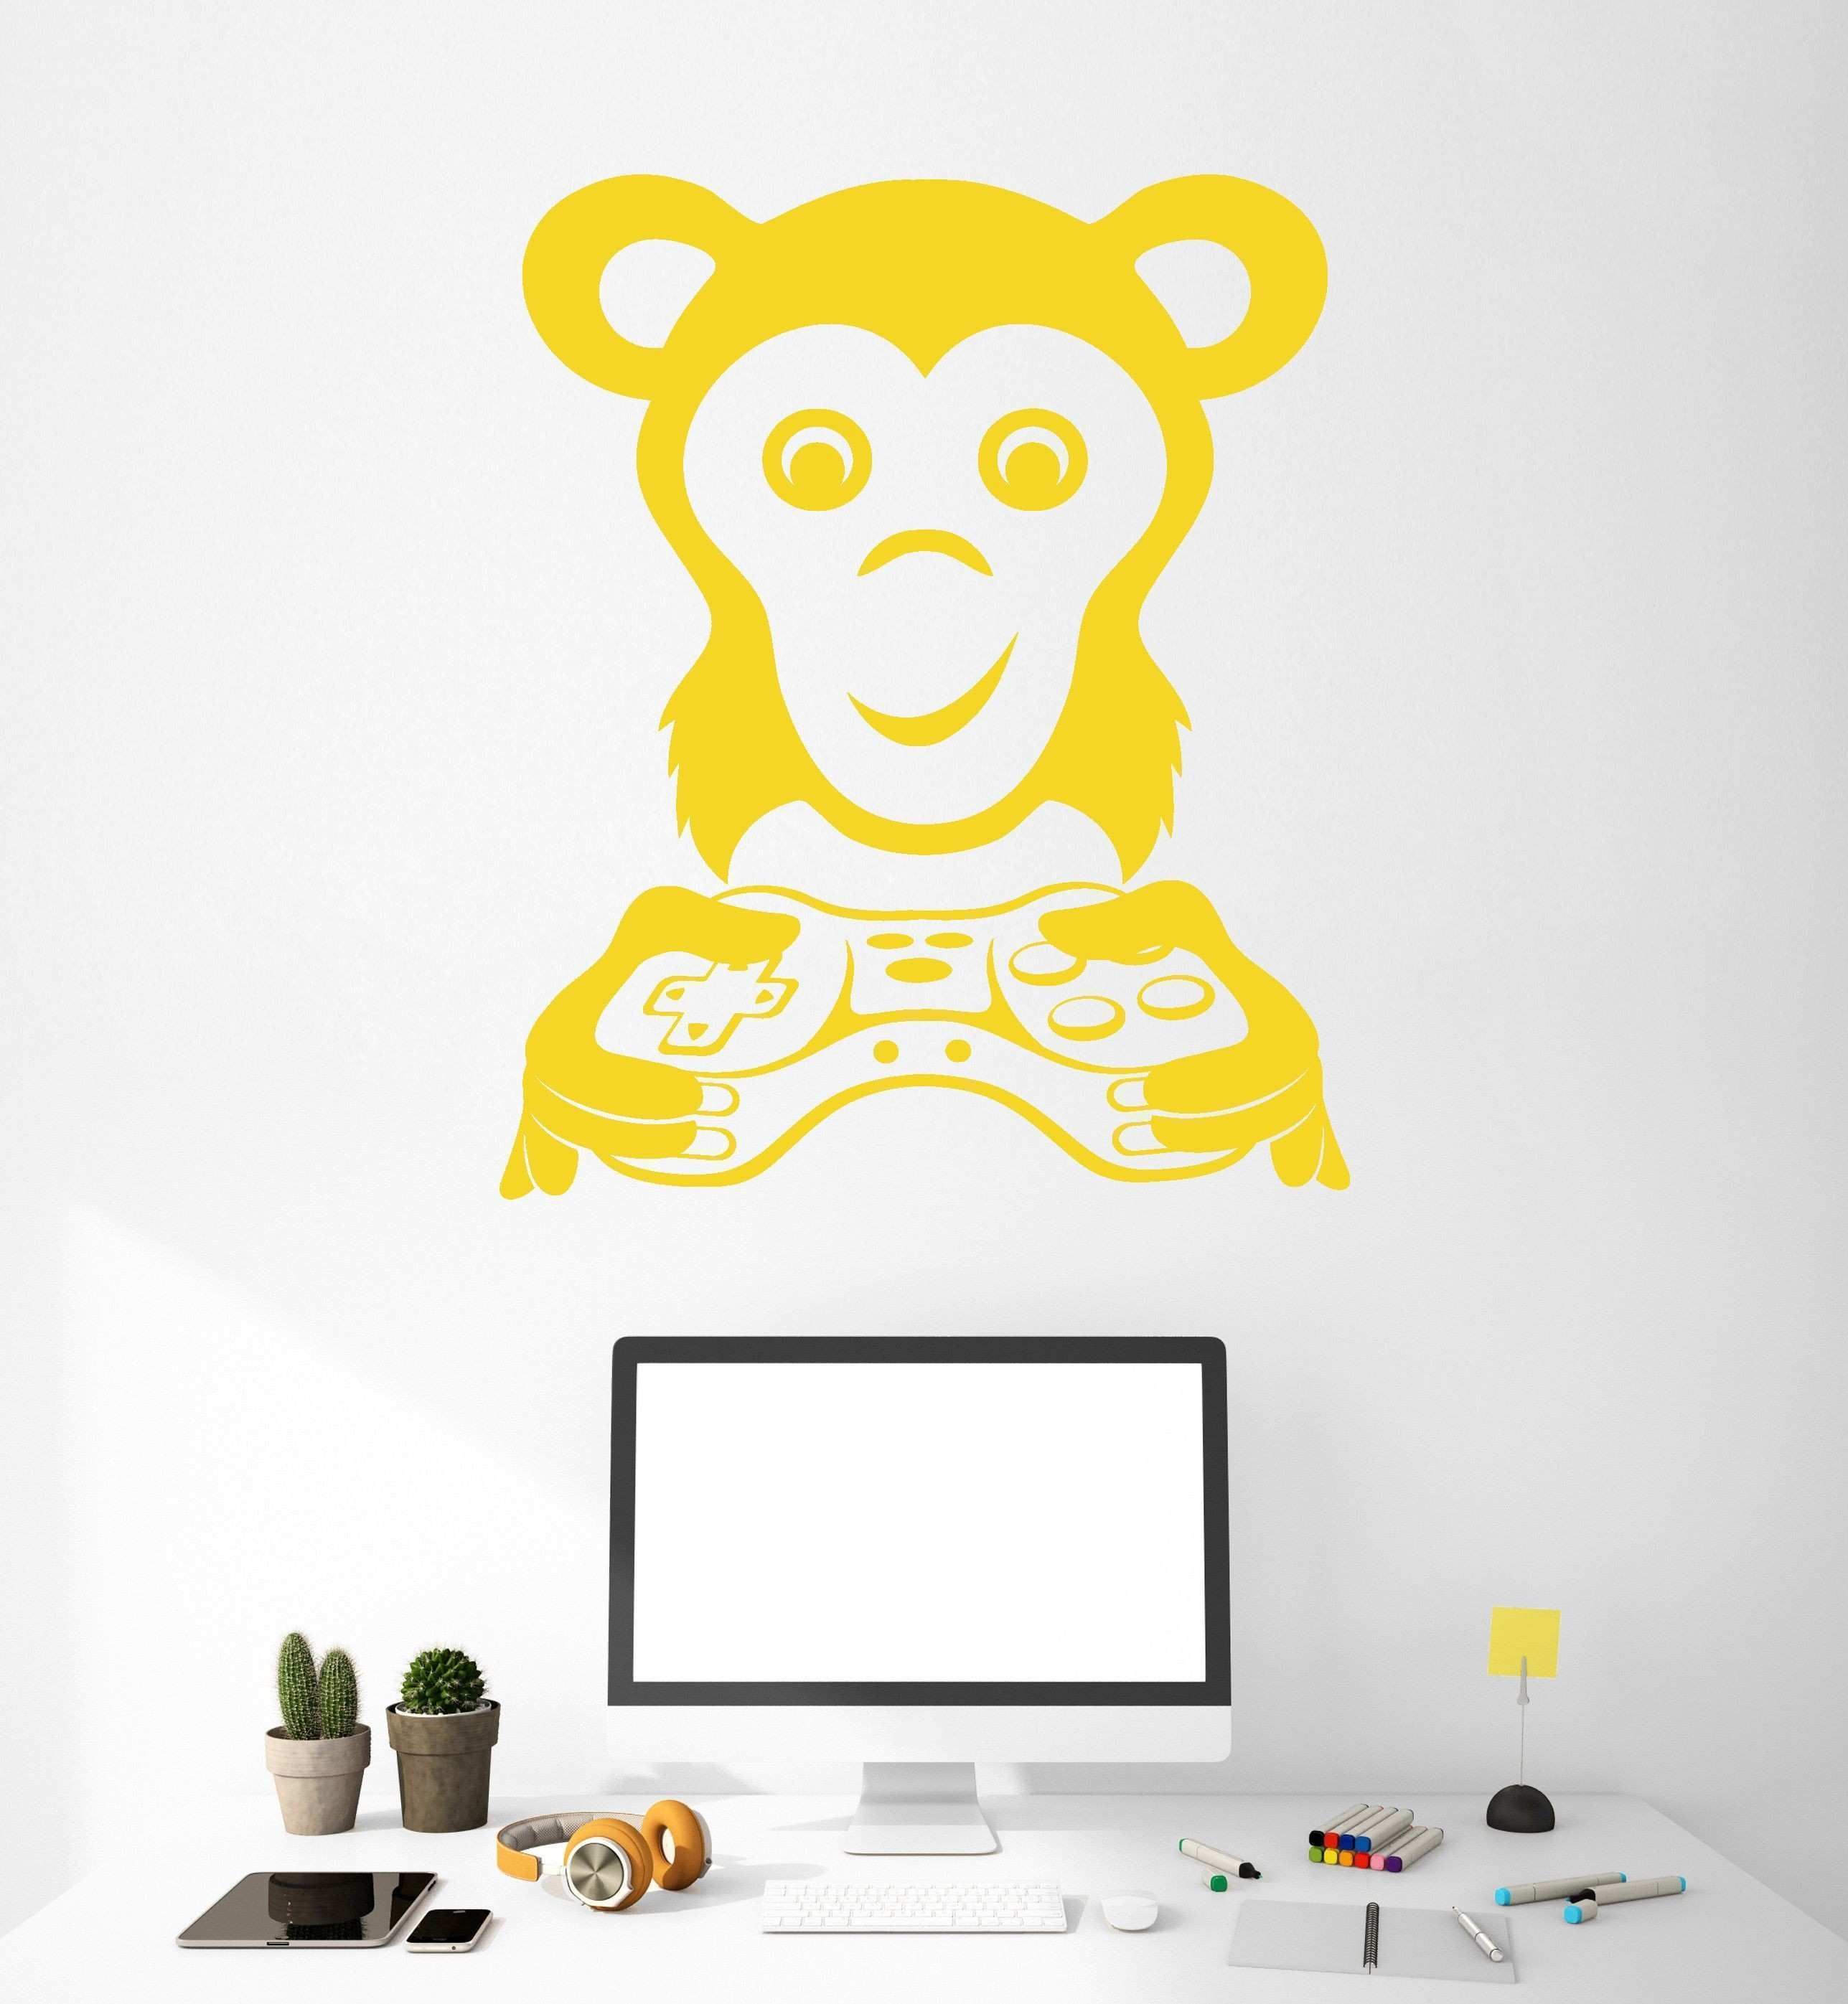 Monkey Wall Stickers Lovely Vinyl Wall Decal Video Game Gamer Monkey Animal Joystick Stickers